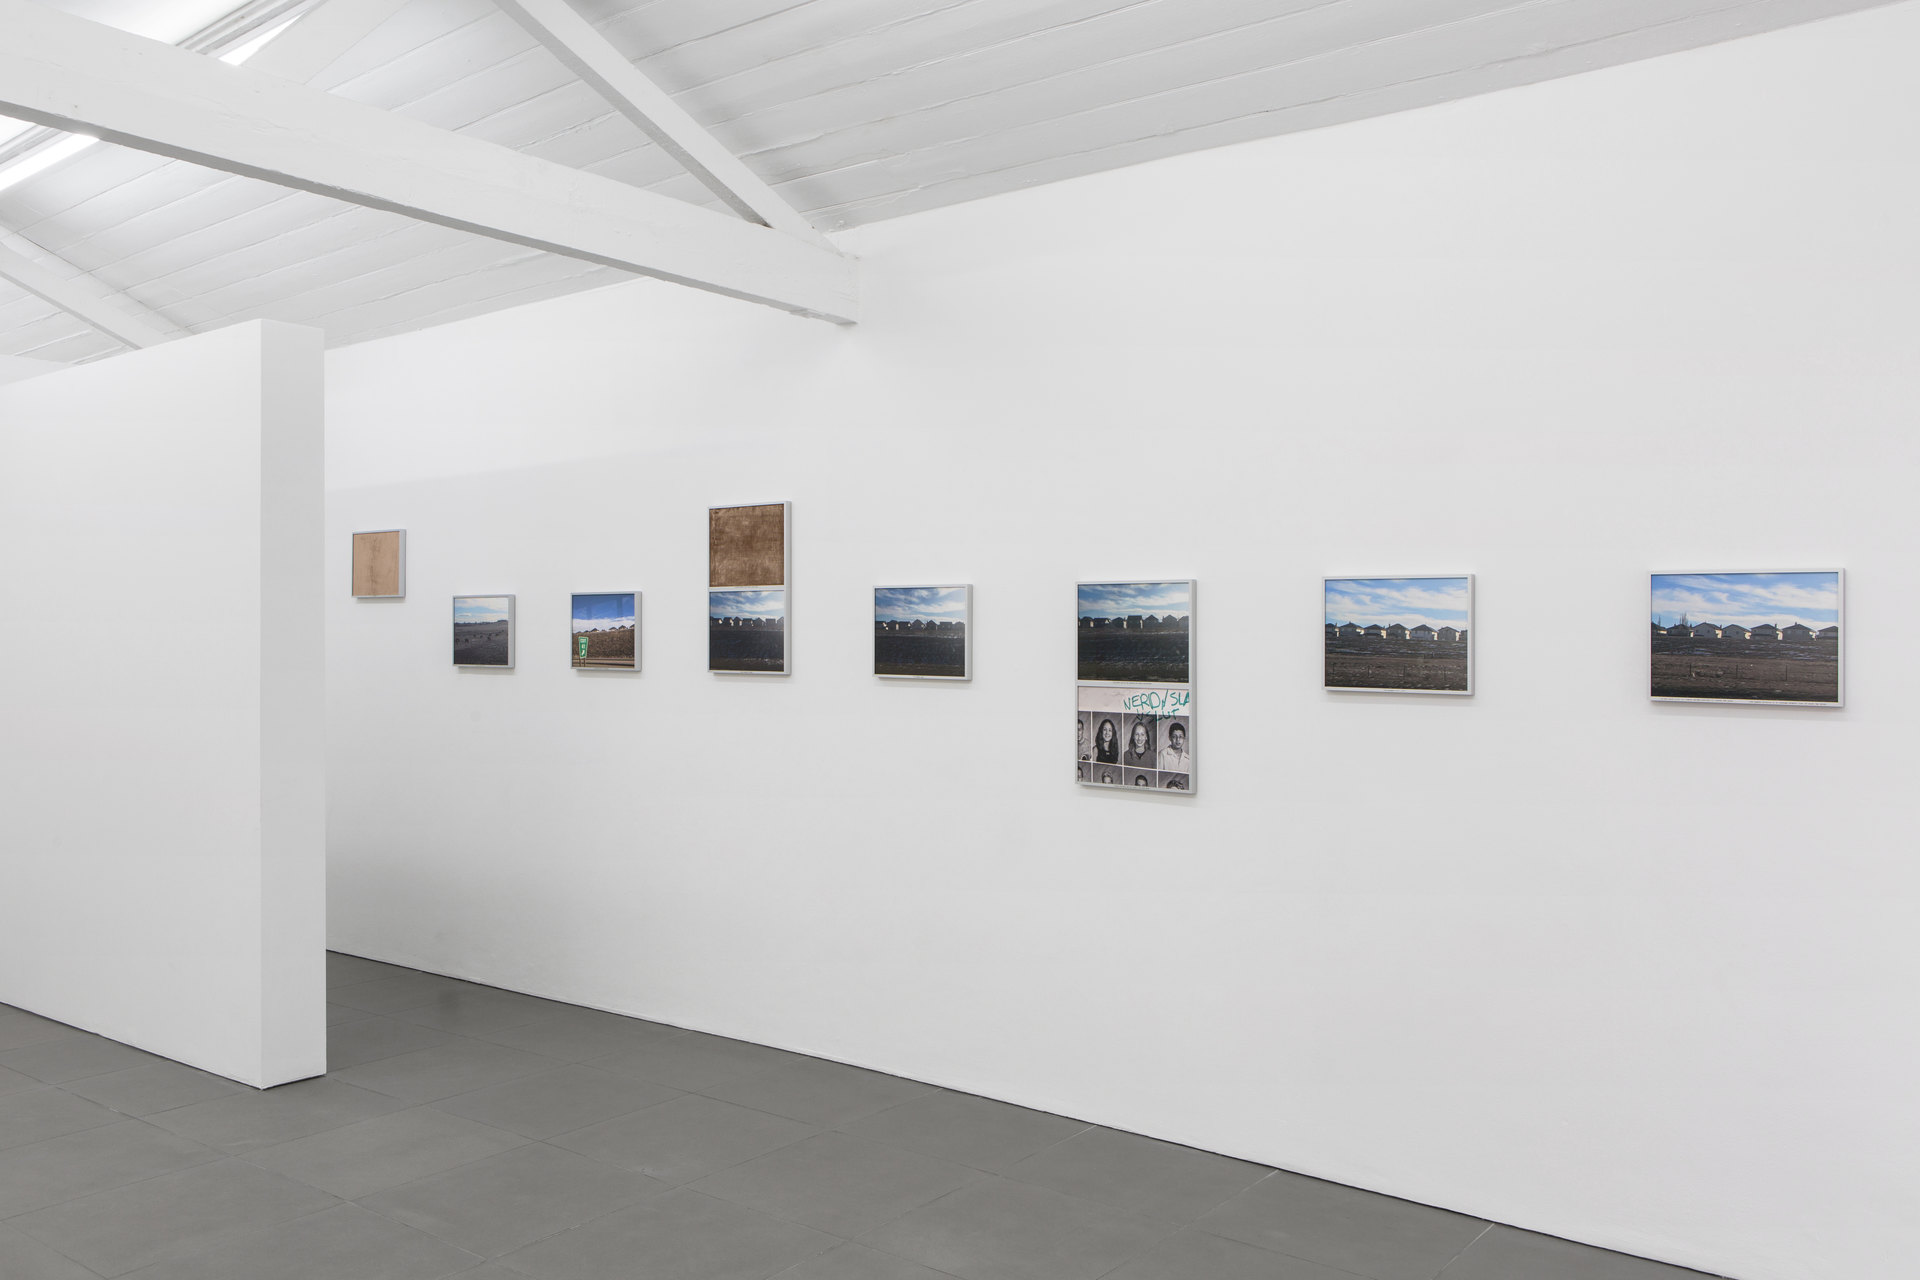 Joins, installation view, 2019, Cell Project Space